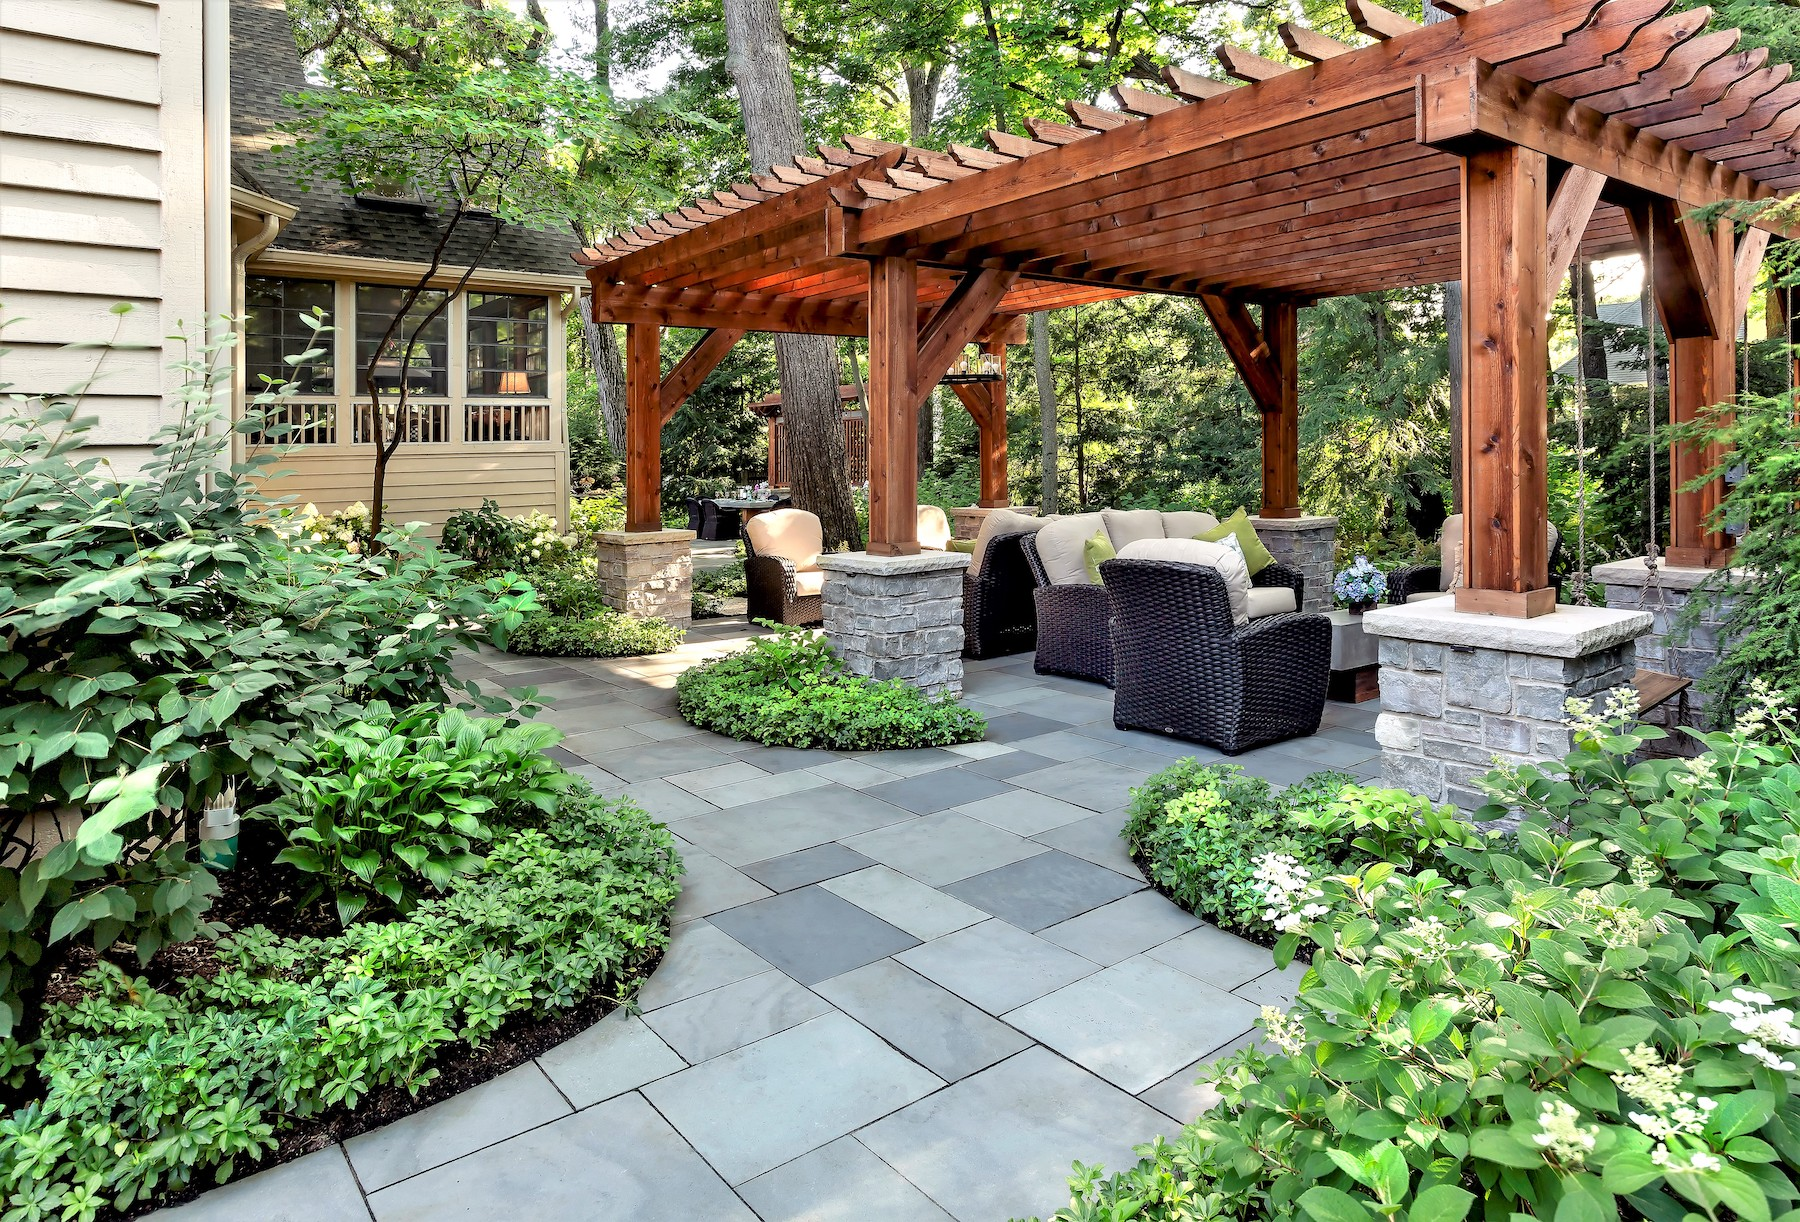 Patio designed and built by KD Landscape